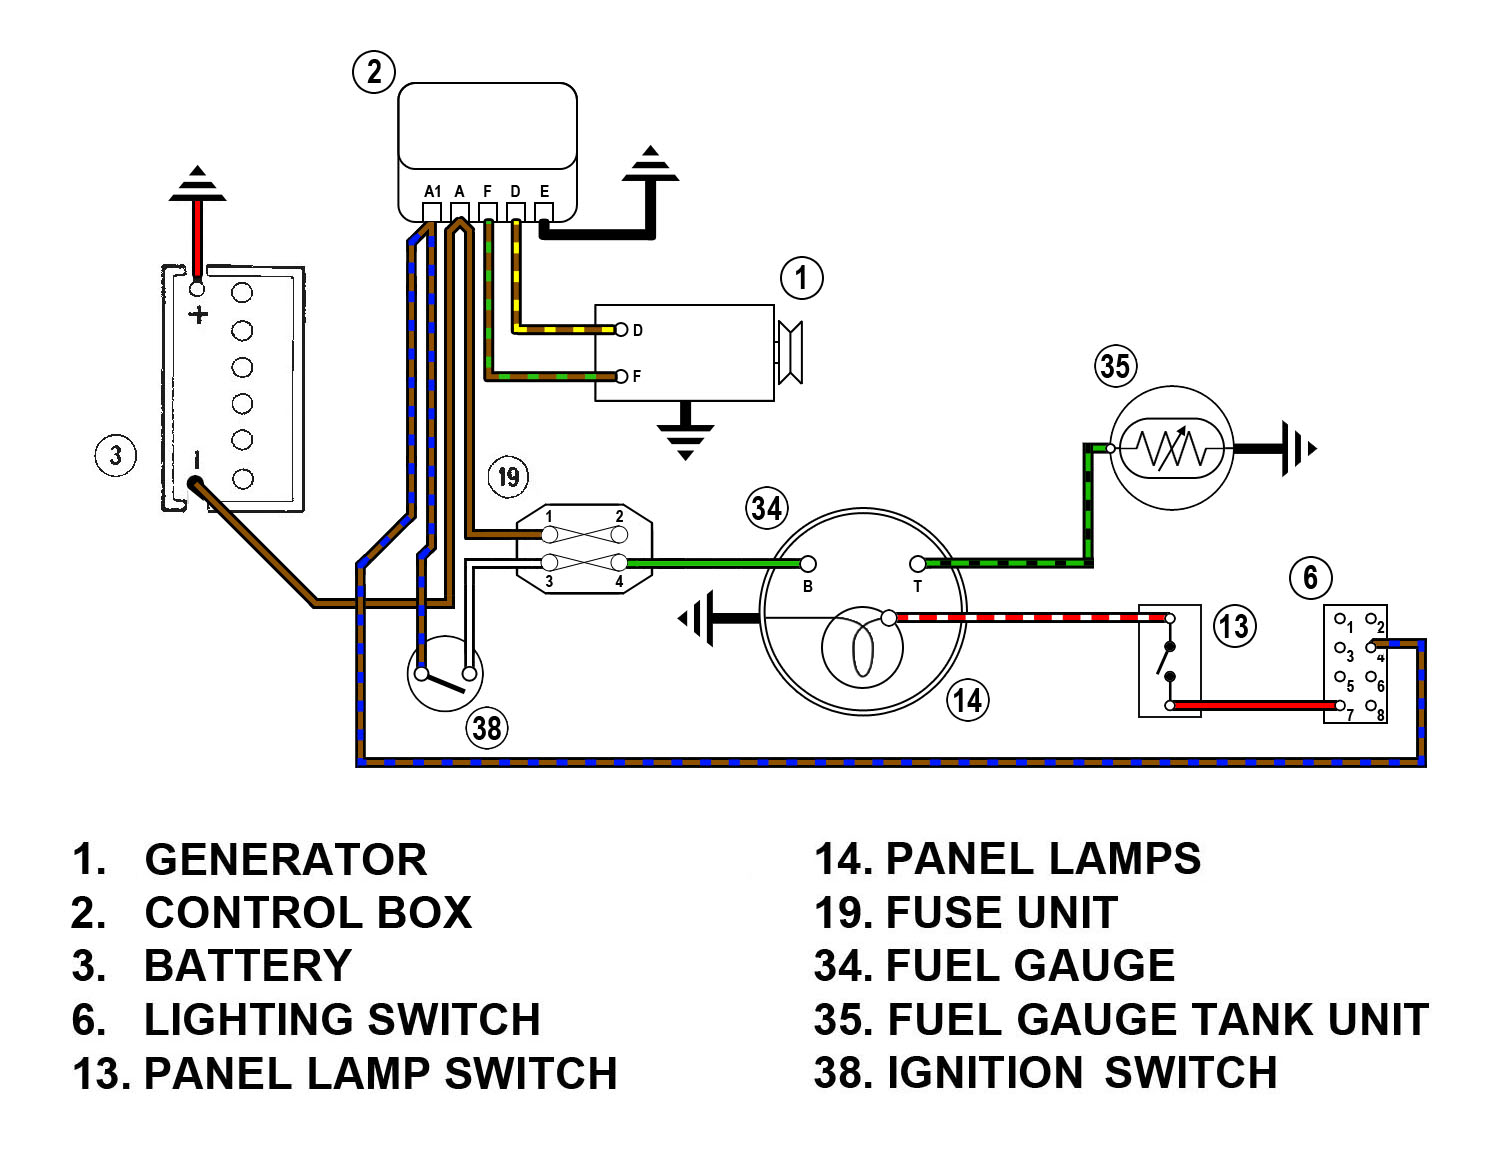 FuelGaugeWiringSpMkII_MGMkI fuel gauge wiring schematic fuel level circuit \u2022 wiring diagrams innovate air fuel ratio gauge wiring at gsmportal.co